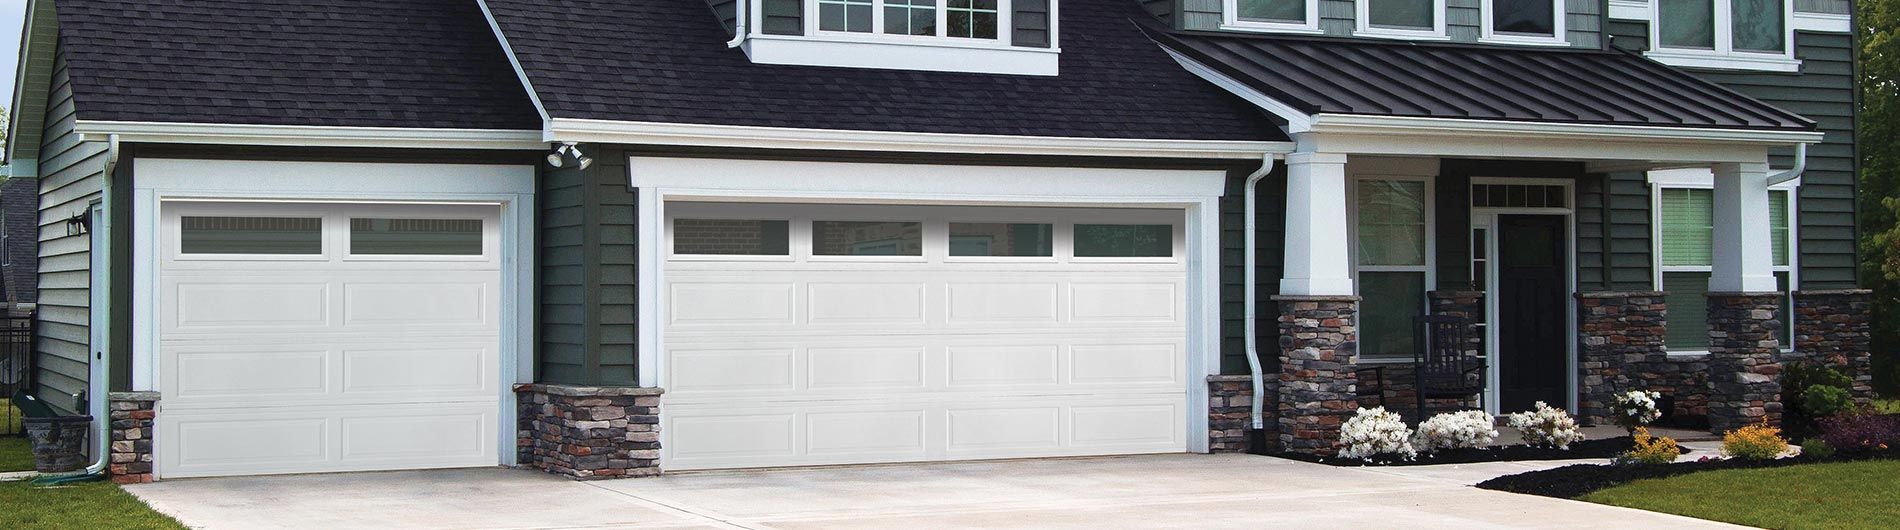 Clic Steel Garage Doors 8300 8500 on windows for sunrooms, windows for basements, windows for ceilings, windows for shutters, windows for porches, windows for decks, windows for shower areas, windows for a house, windows for sheds, windows for cedar siding, windows for blinds, windows for lighting, windows for living room, windows for bathrooms, windows for home decor, windows for apartments, windows for churches, windows for metal siding, windows for dormers, windows for kitchens,